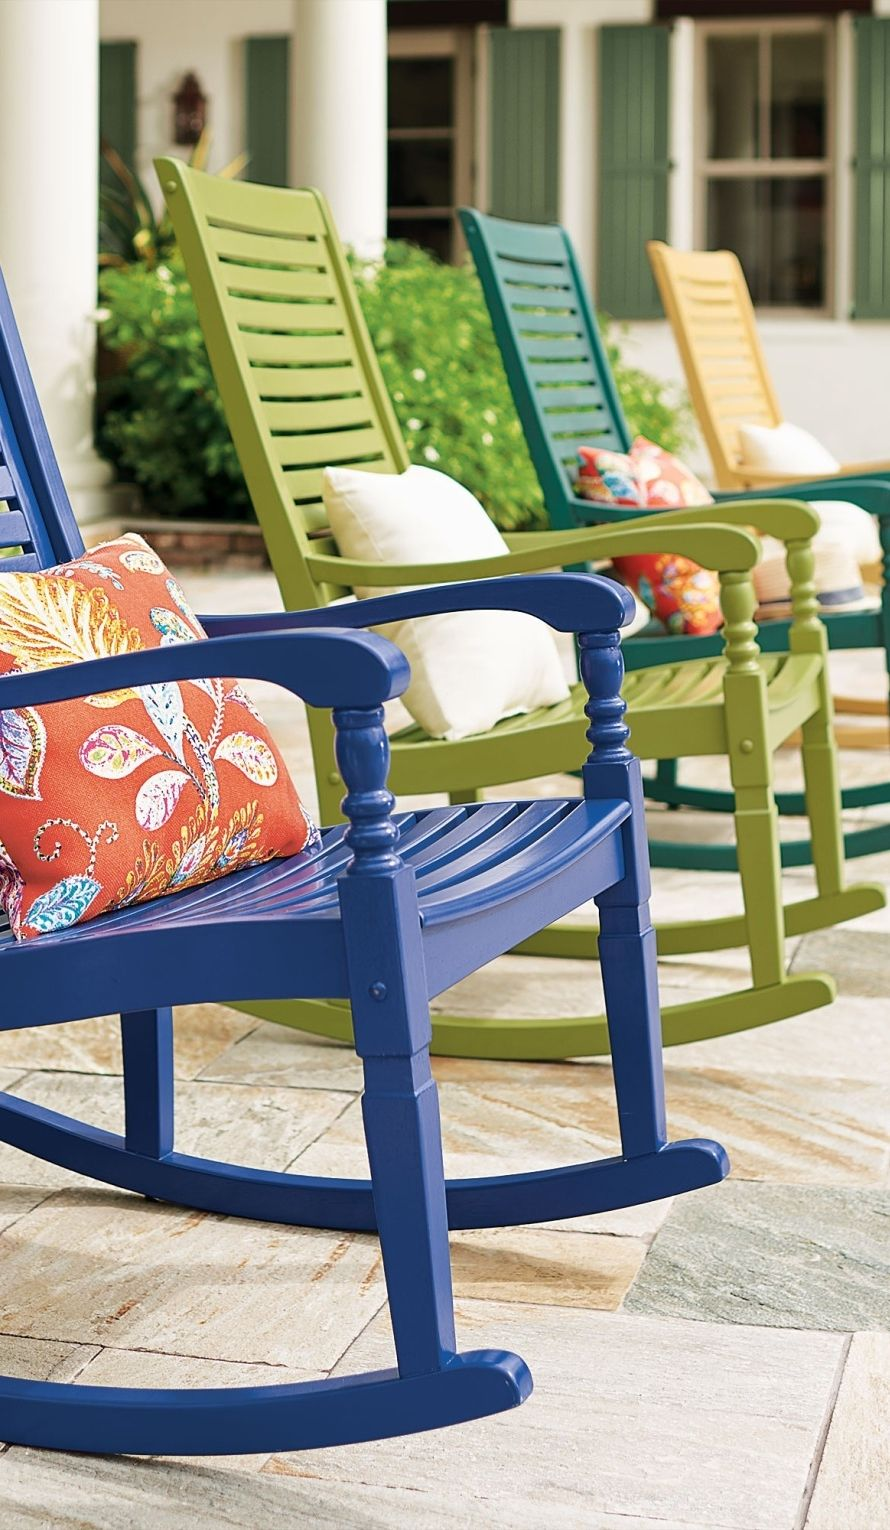 nantucket rocking chair patio perfection pinterest meuble jardin maison et mobilier de salon. Black Bedroom Furniture Sets. Home Design Ideas